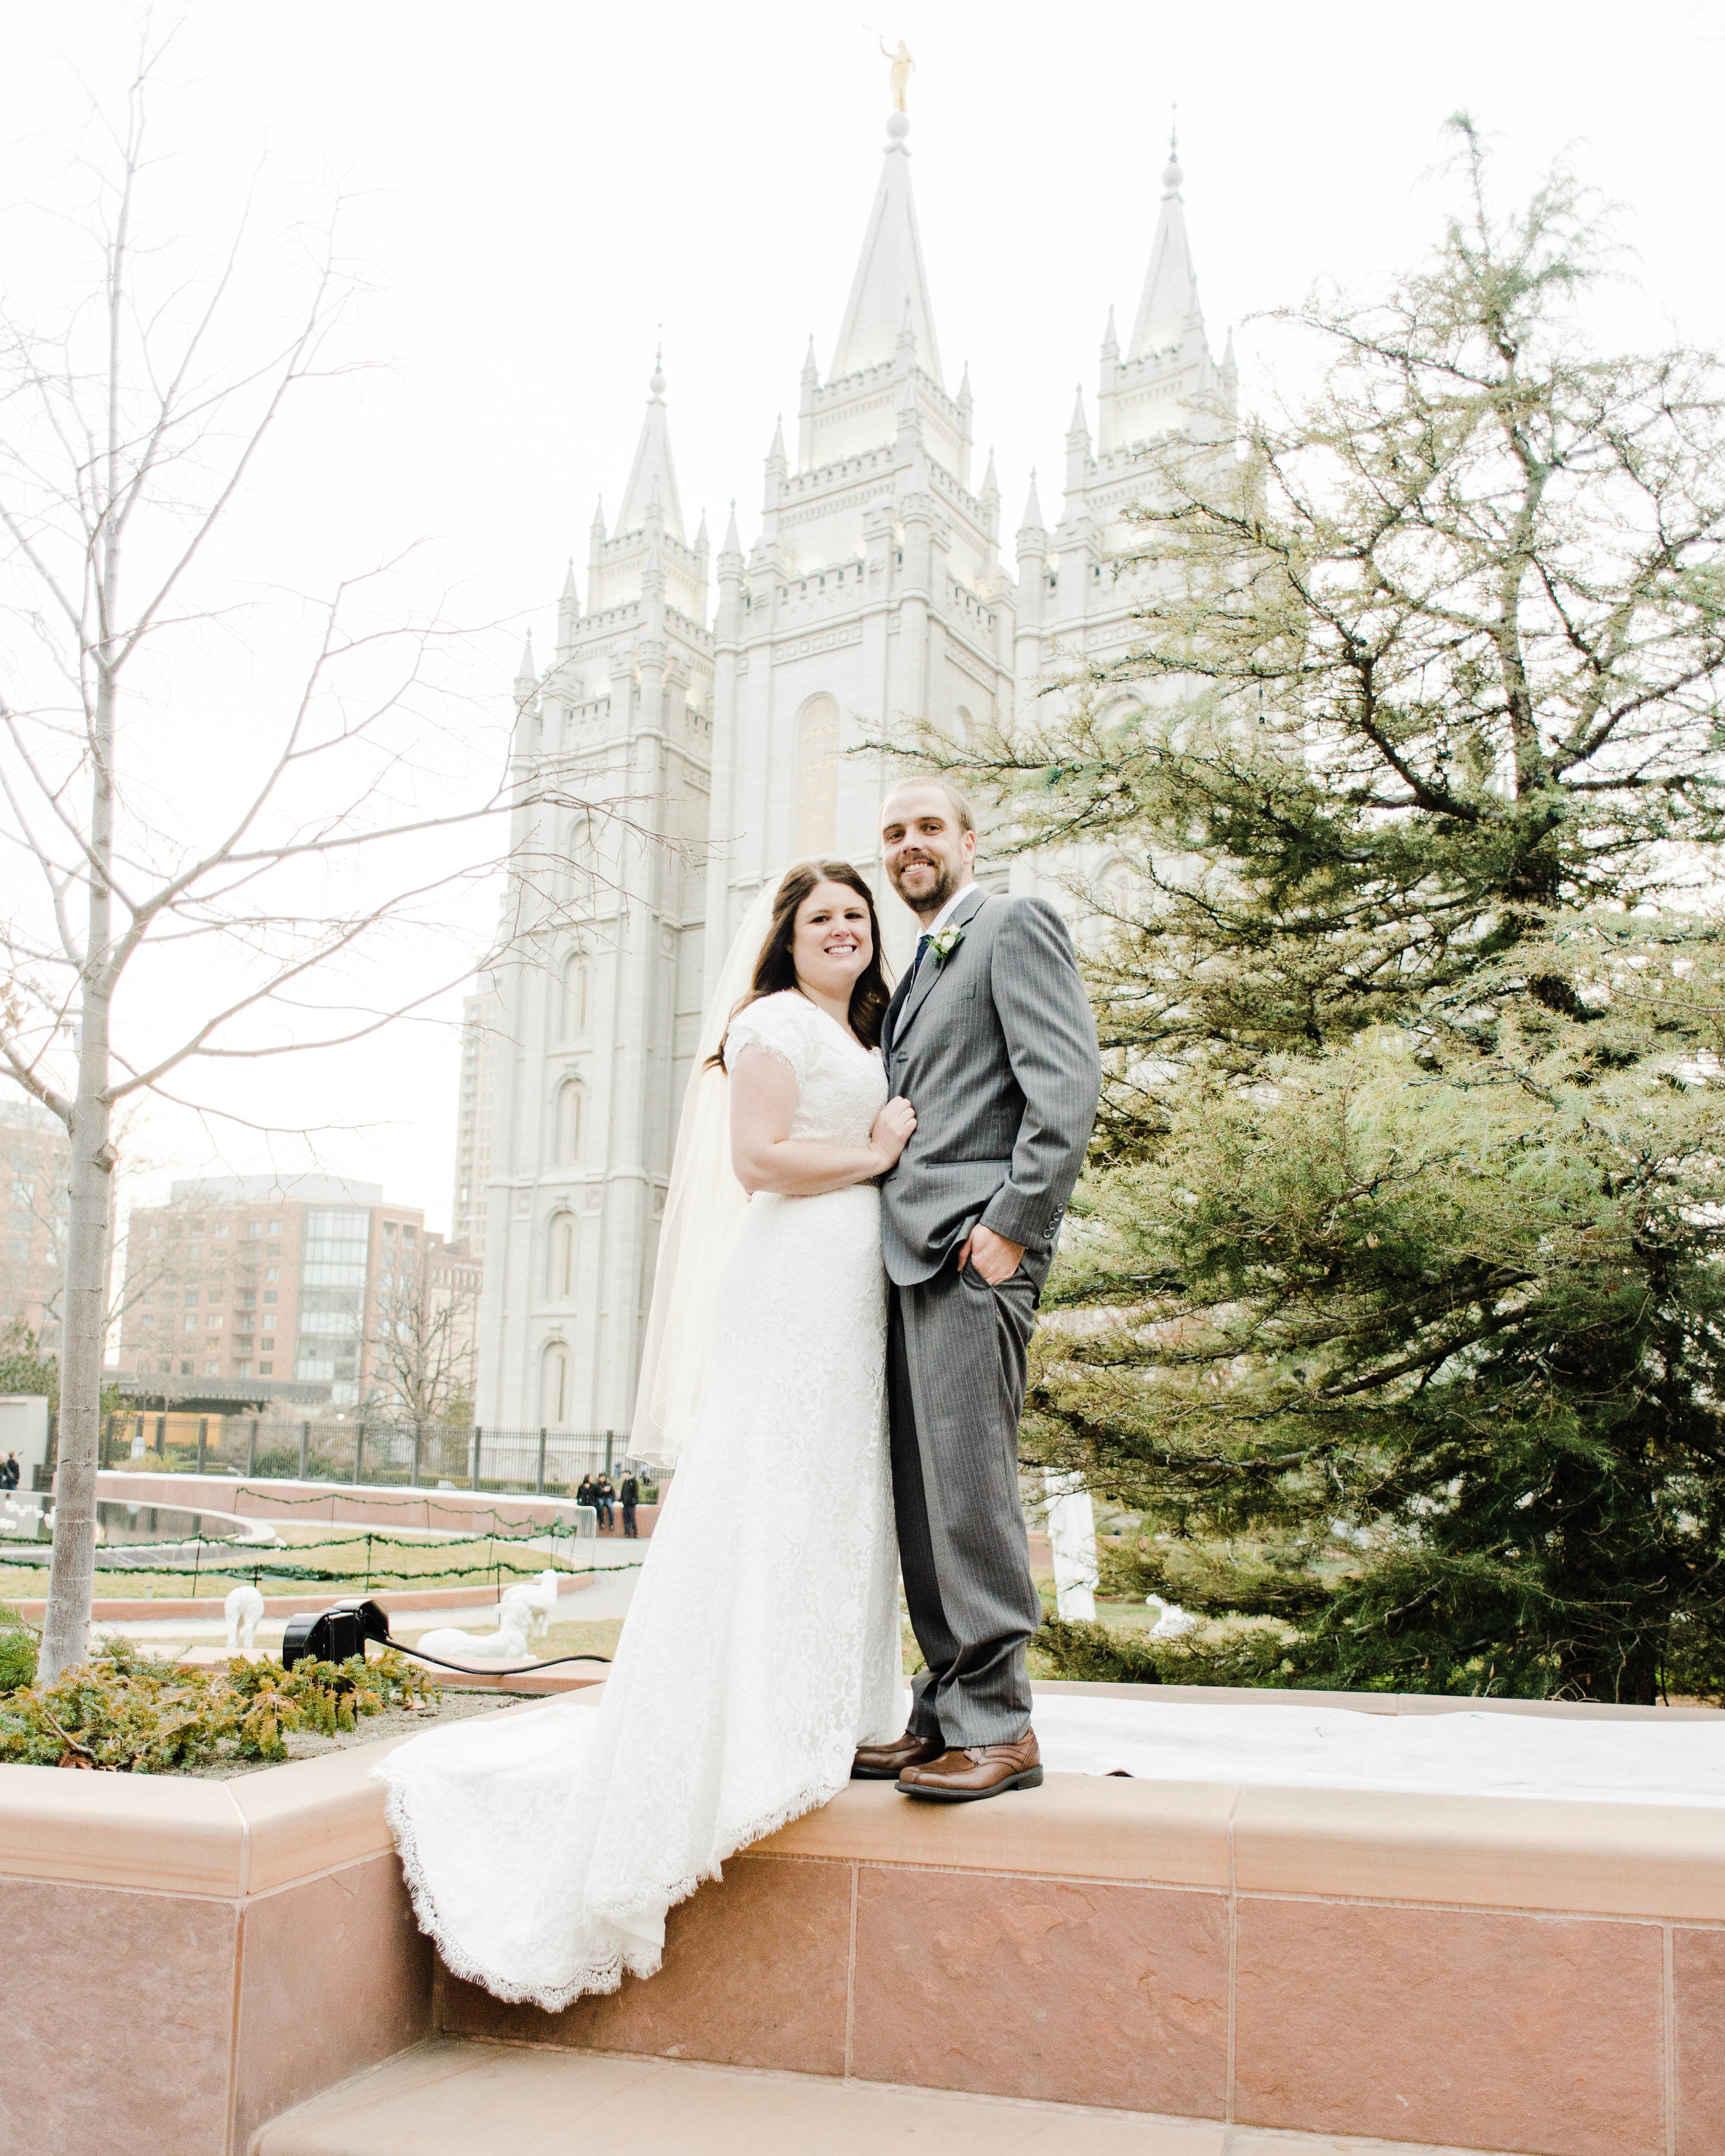 LINDSAY+BRAD-BRIDALS-Sadie_Banks_Photography-185.jpg